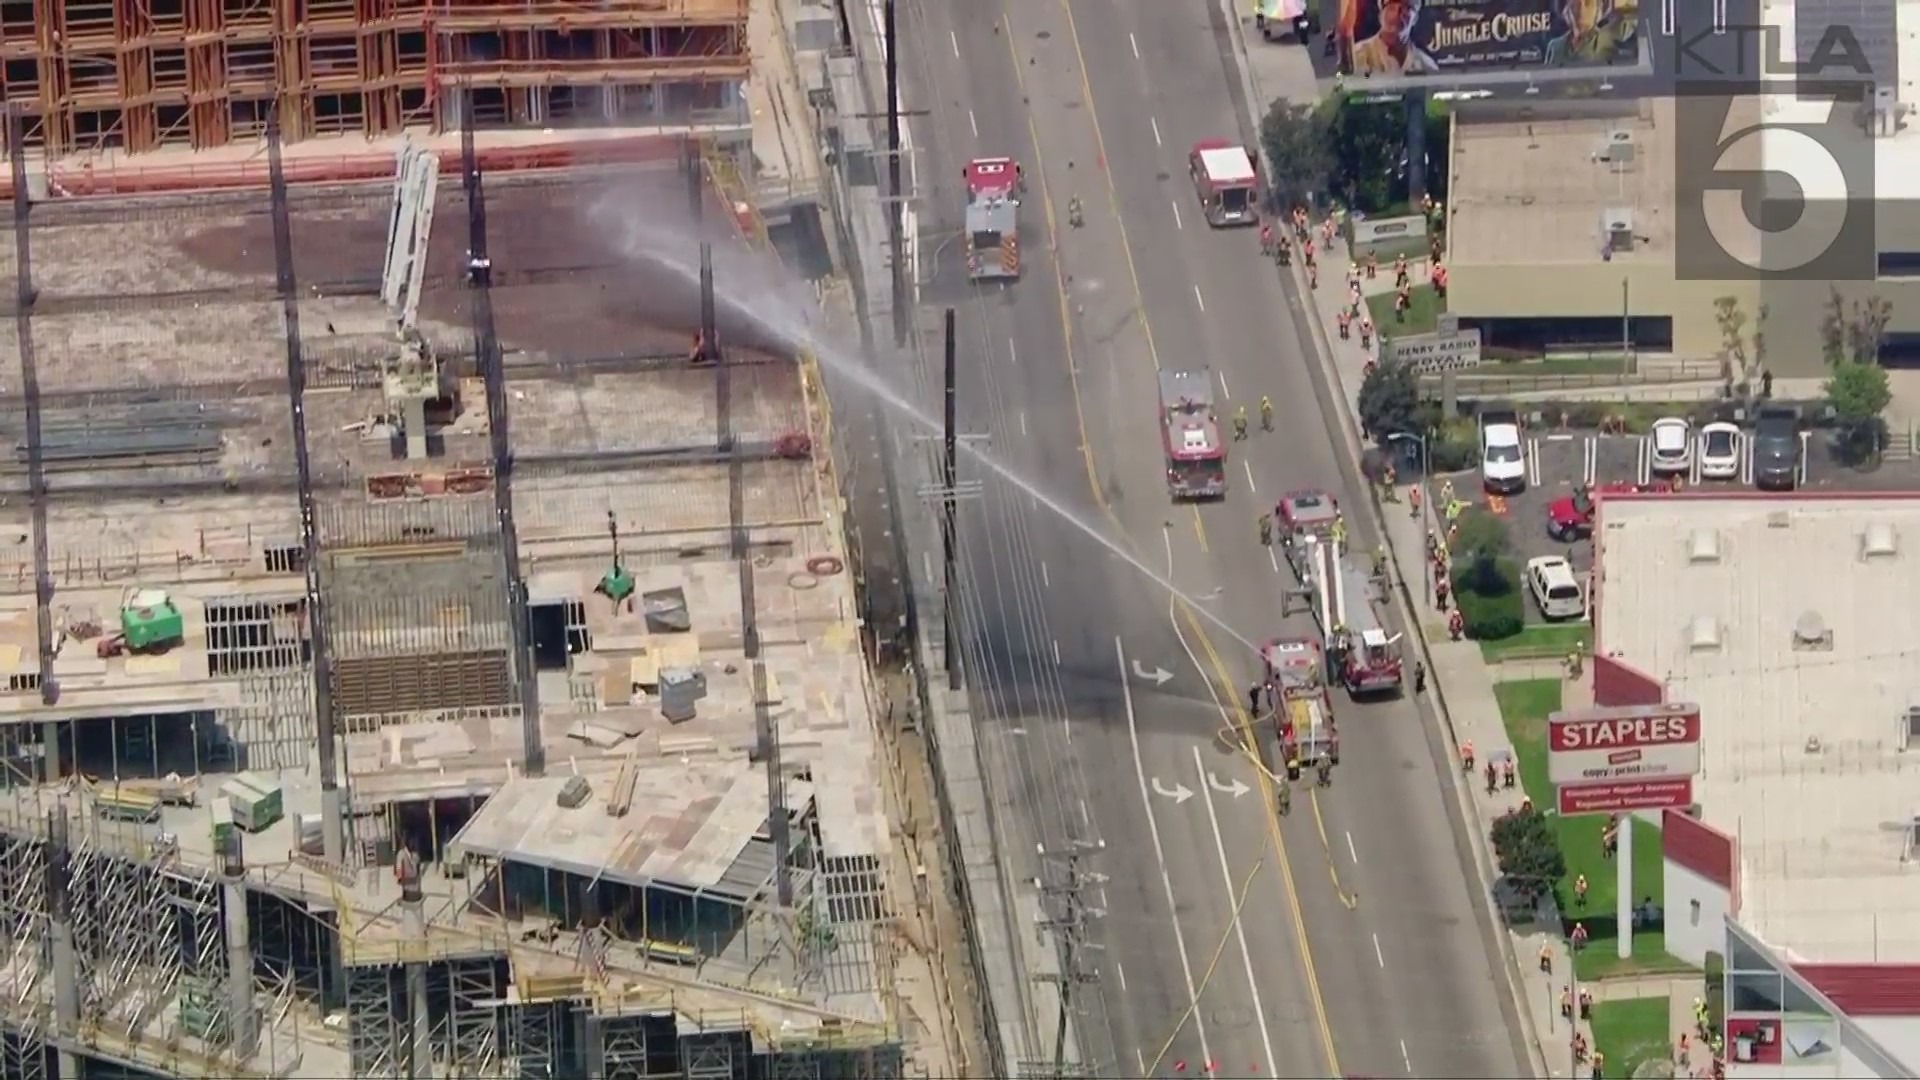 Firefighters extinguish a blaze at a building that was under construction in West L.A. on July 15, 2021. (KTLA)